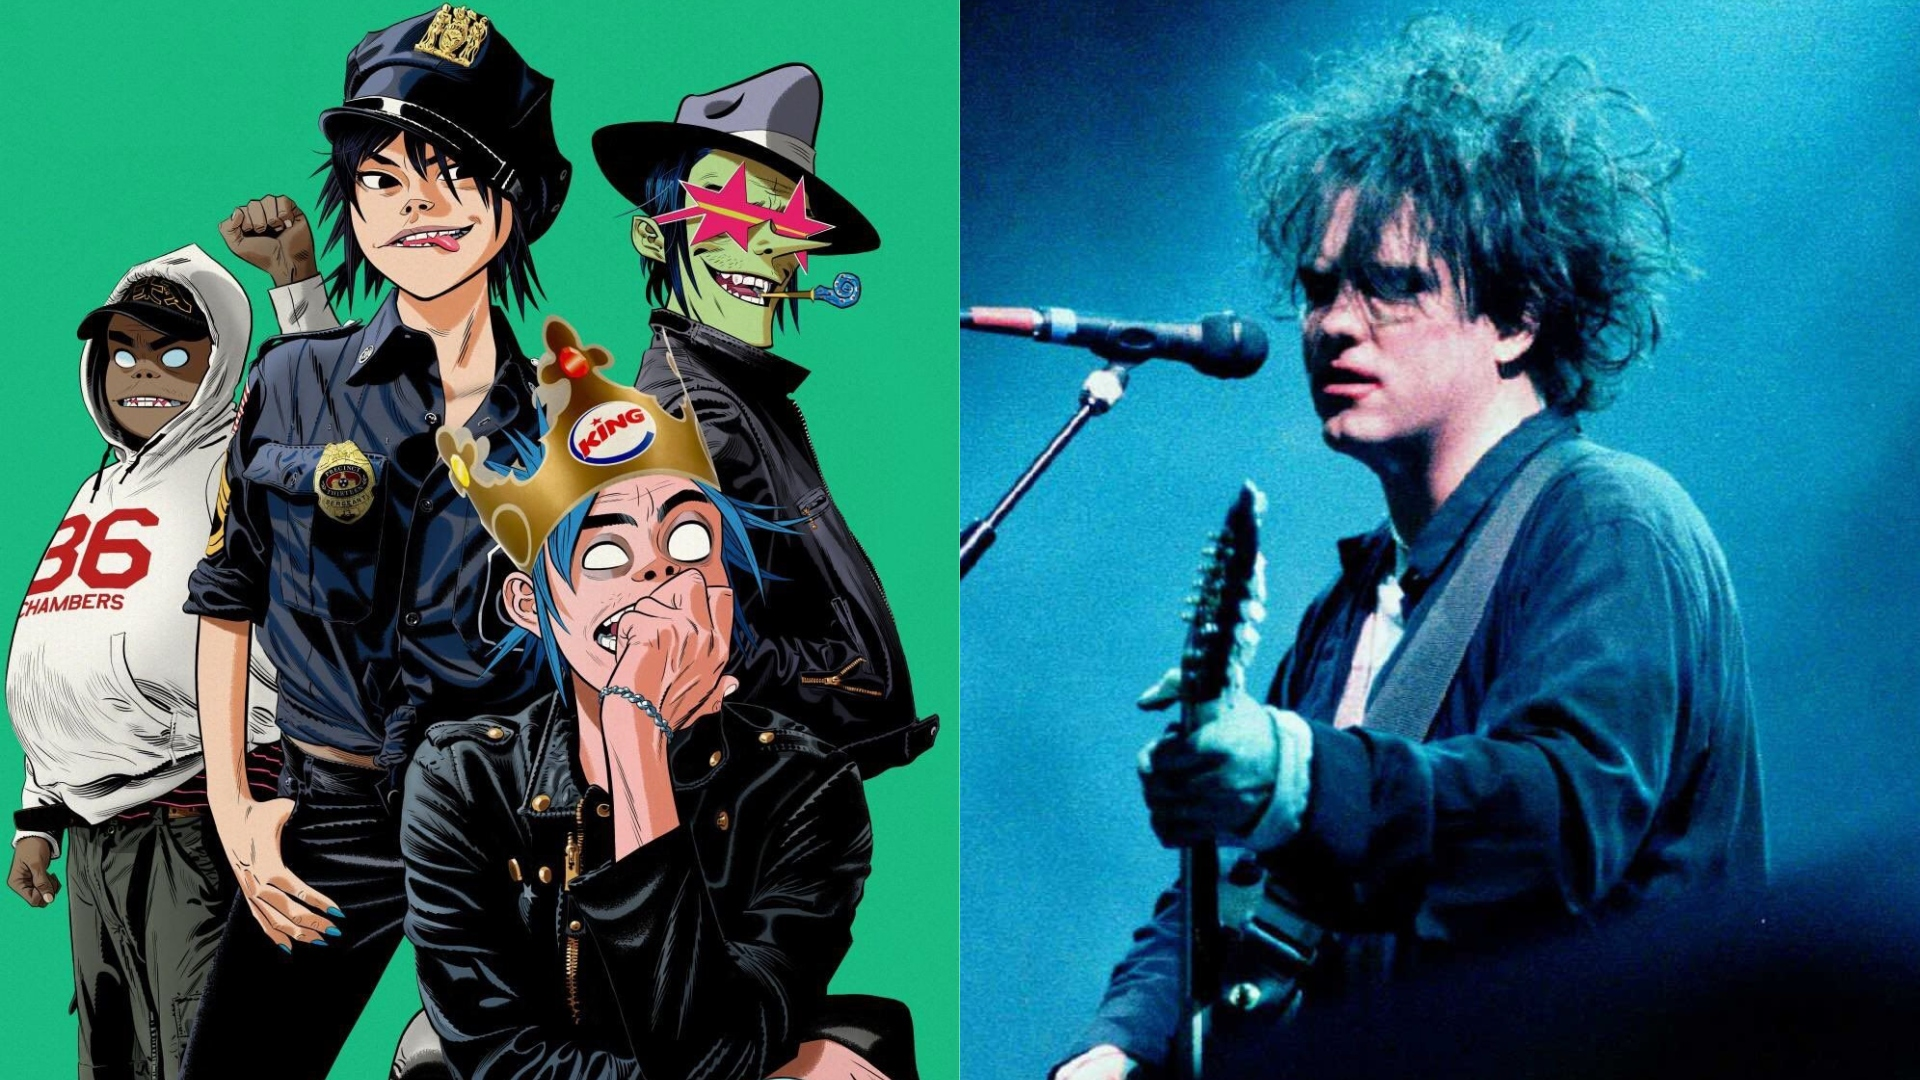 The Gorillaz team up with The Cure's Robert Smith